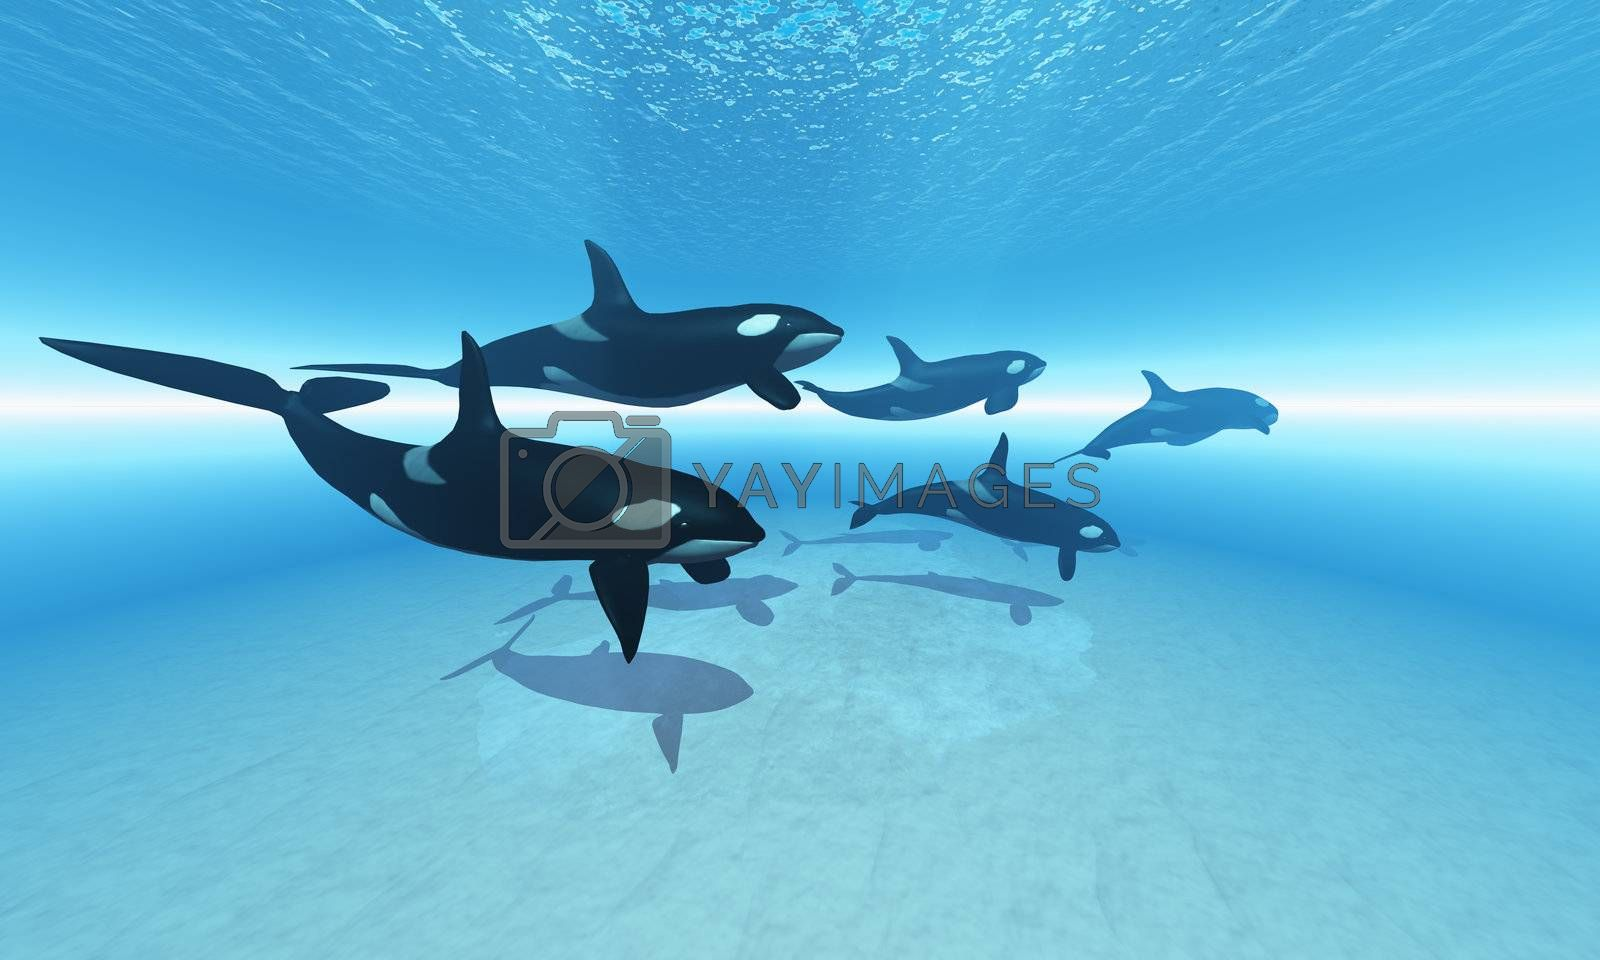 A family of Killer Whales search together for their next meal.